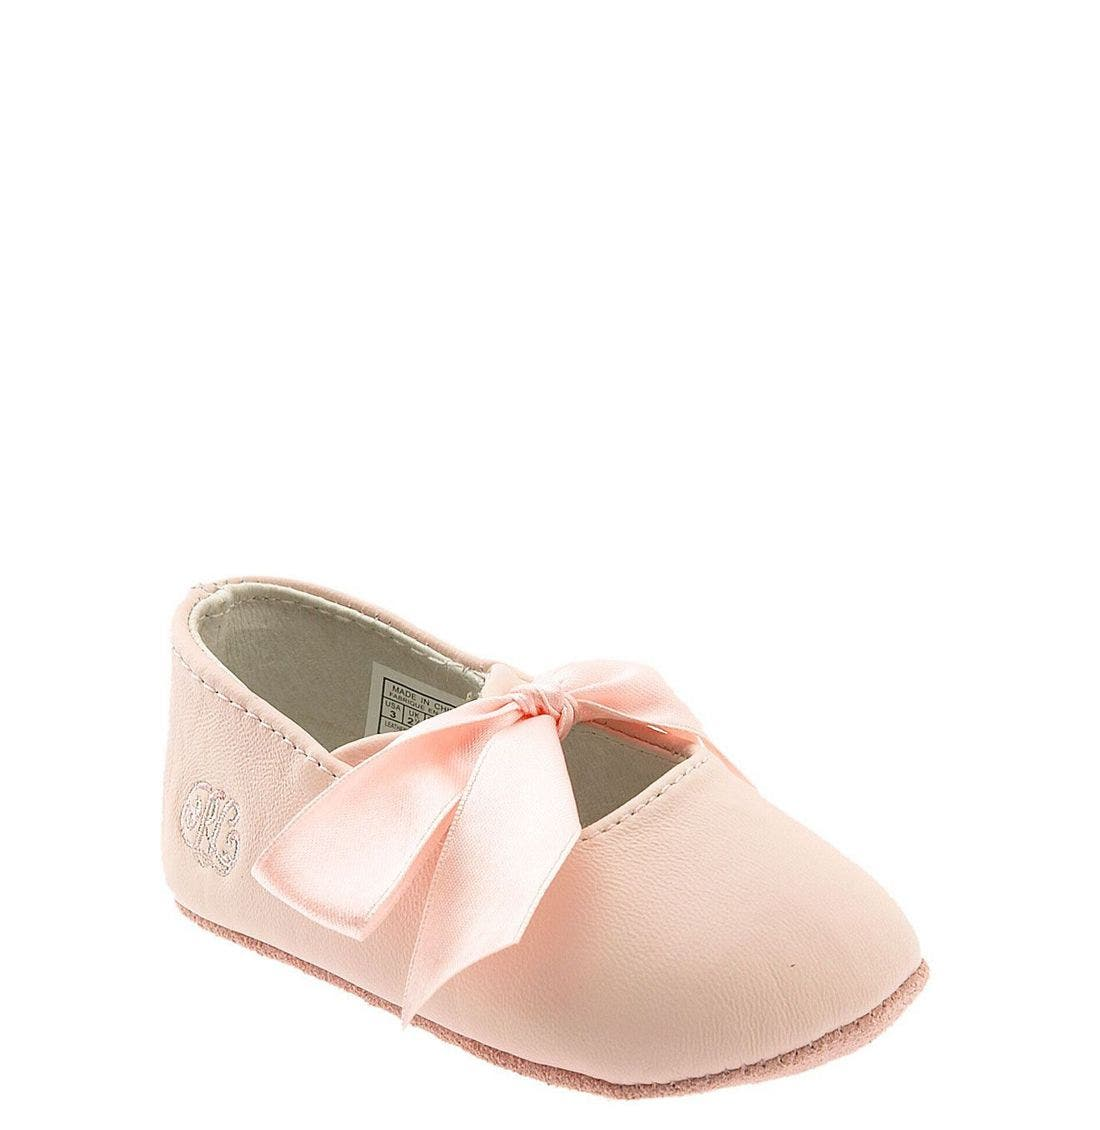 Alternate Image 1 Selected - Ralph Lauren Layette 'Briley' Shoe (Baby)